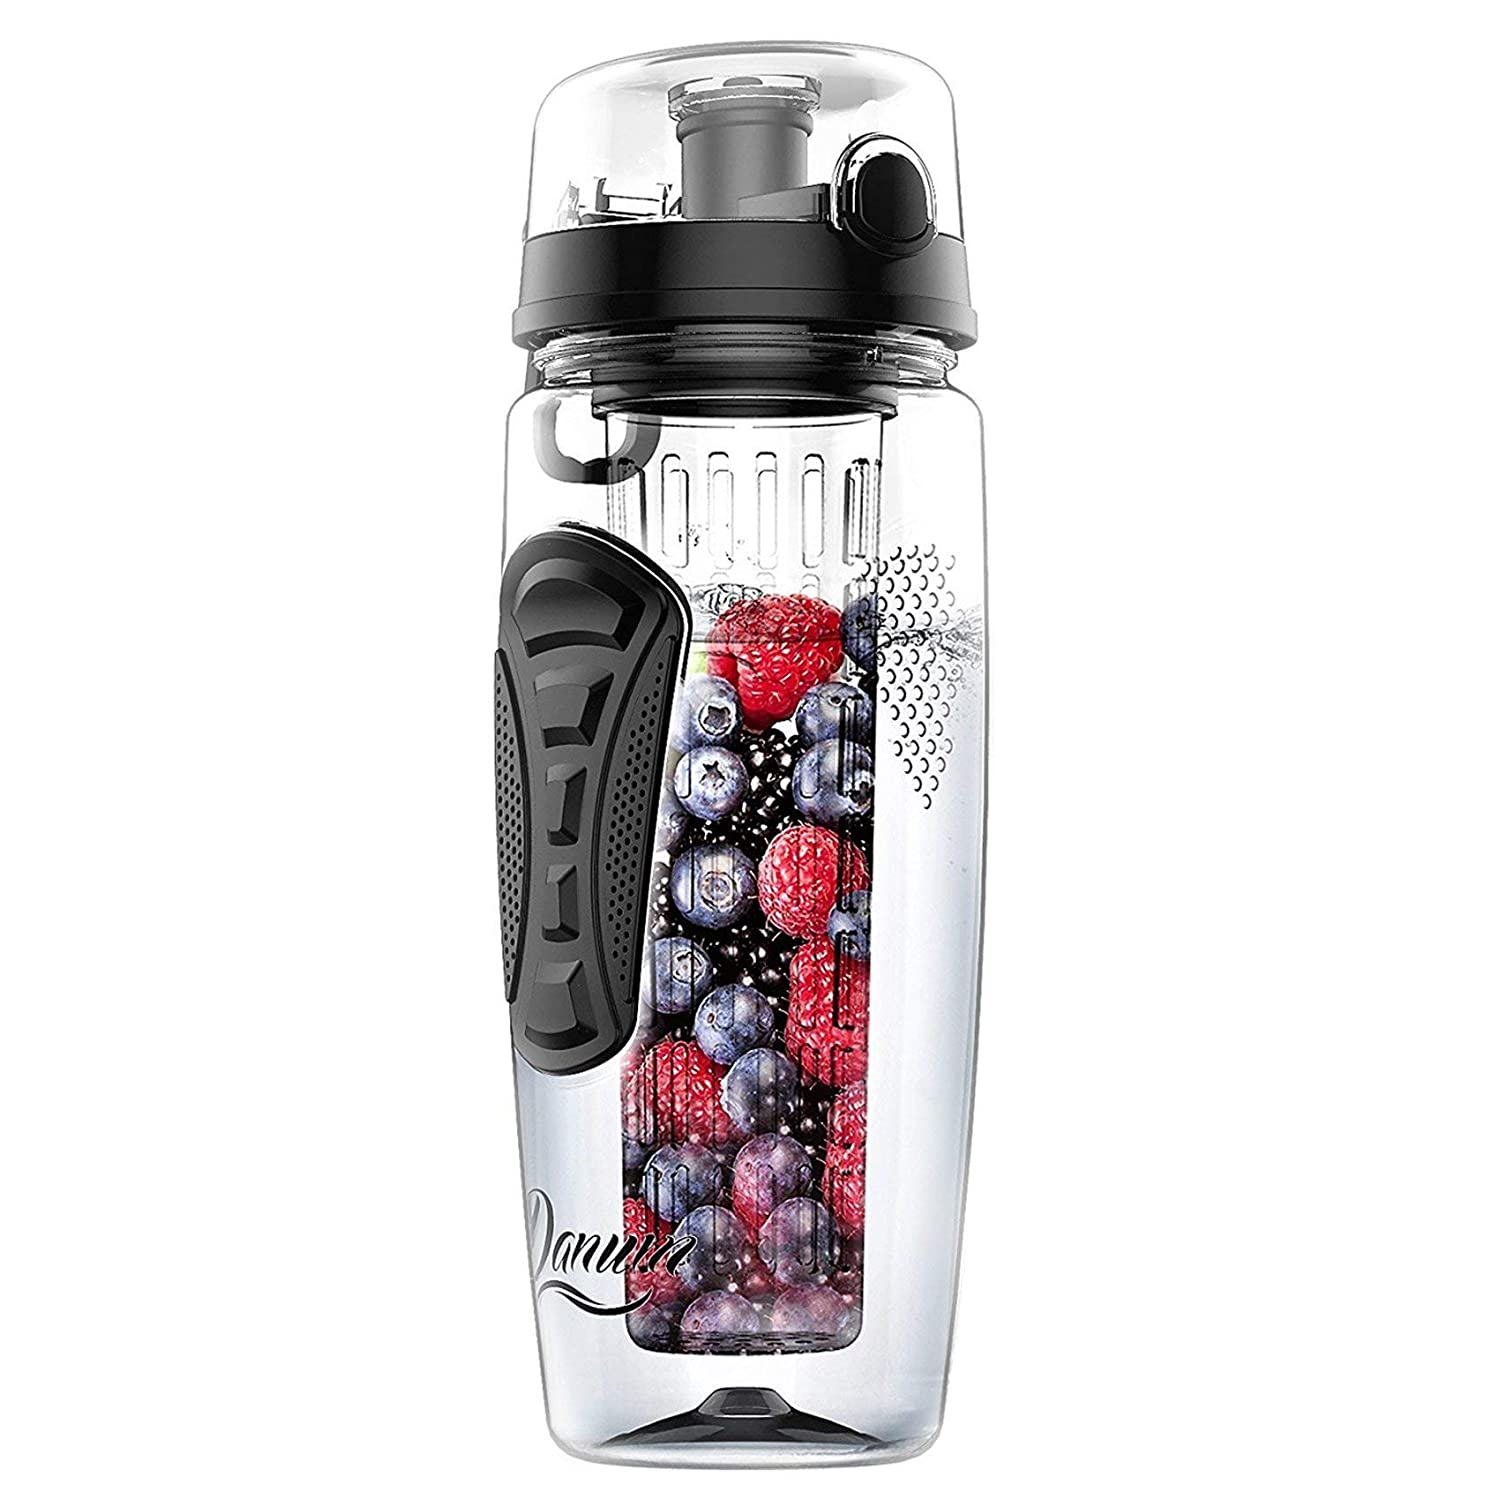 a4dc52f15908 Danum Fruit Infuser Water Bottle Large 32oz Leak-Proof, Flip-Top, Dual Hand  Grips, Made of BPA-Free Eastman Tritan with Multiple Color Options & Free  ...